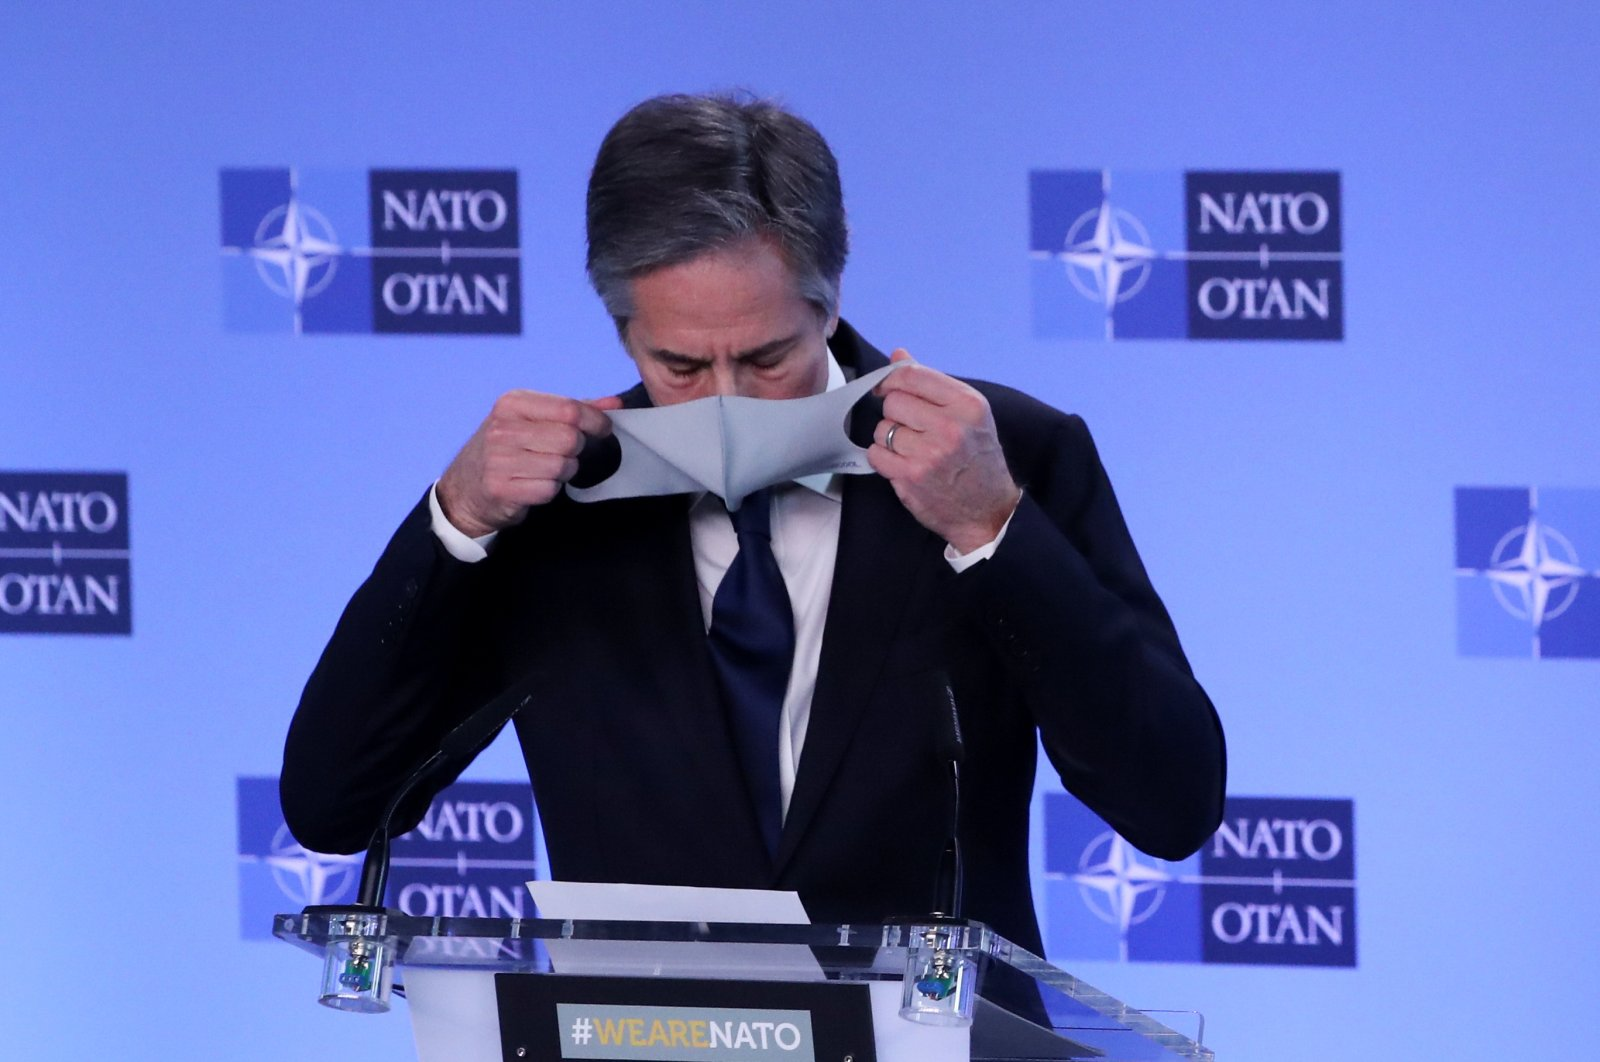 U.S. Secretary of State Antony Blinken puts on his protective mask during a news conference at a NATO Foreign Ministers' meeting at the alliance's headquarters in Brussels, Belgium, March 23, 2021. (REUTERS Photo)